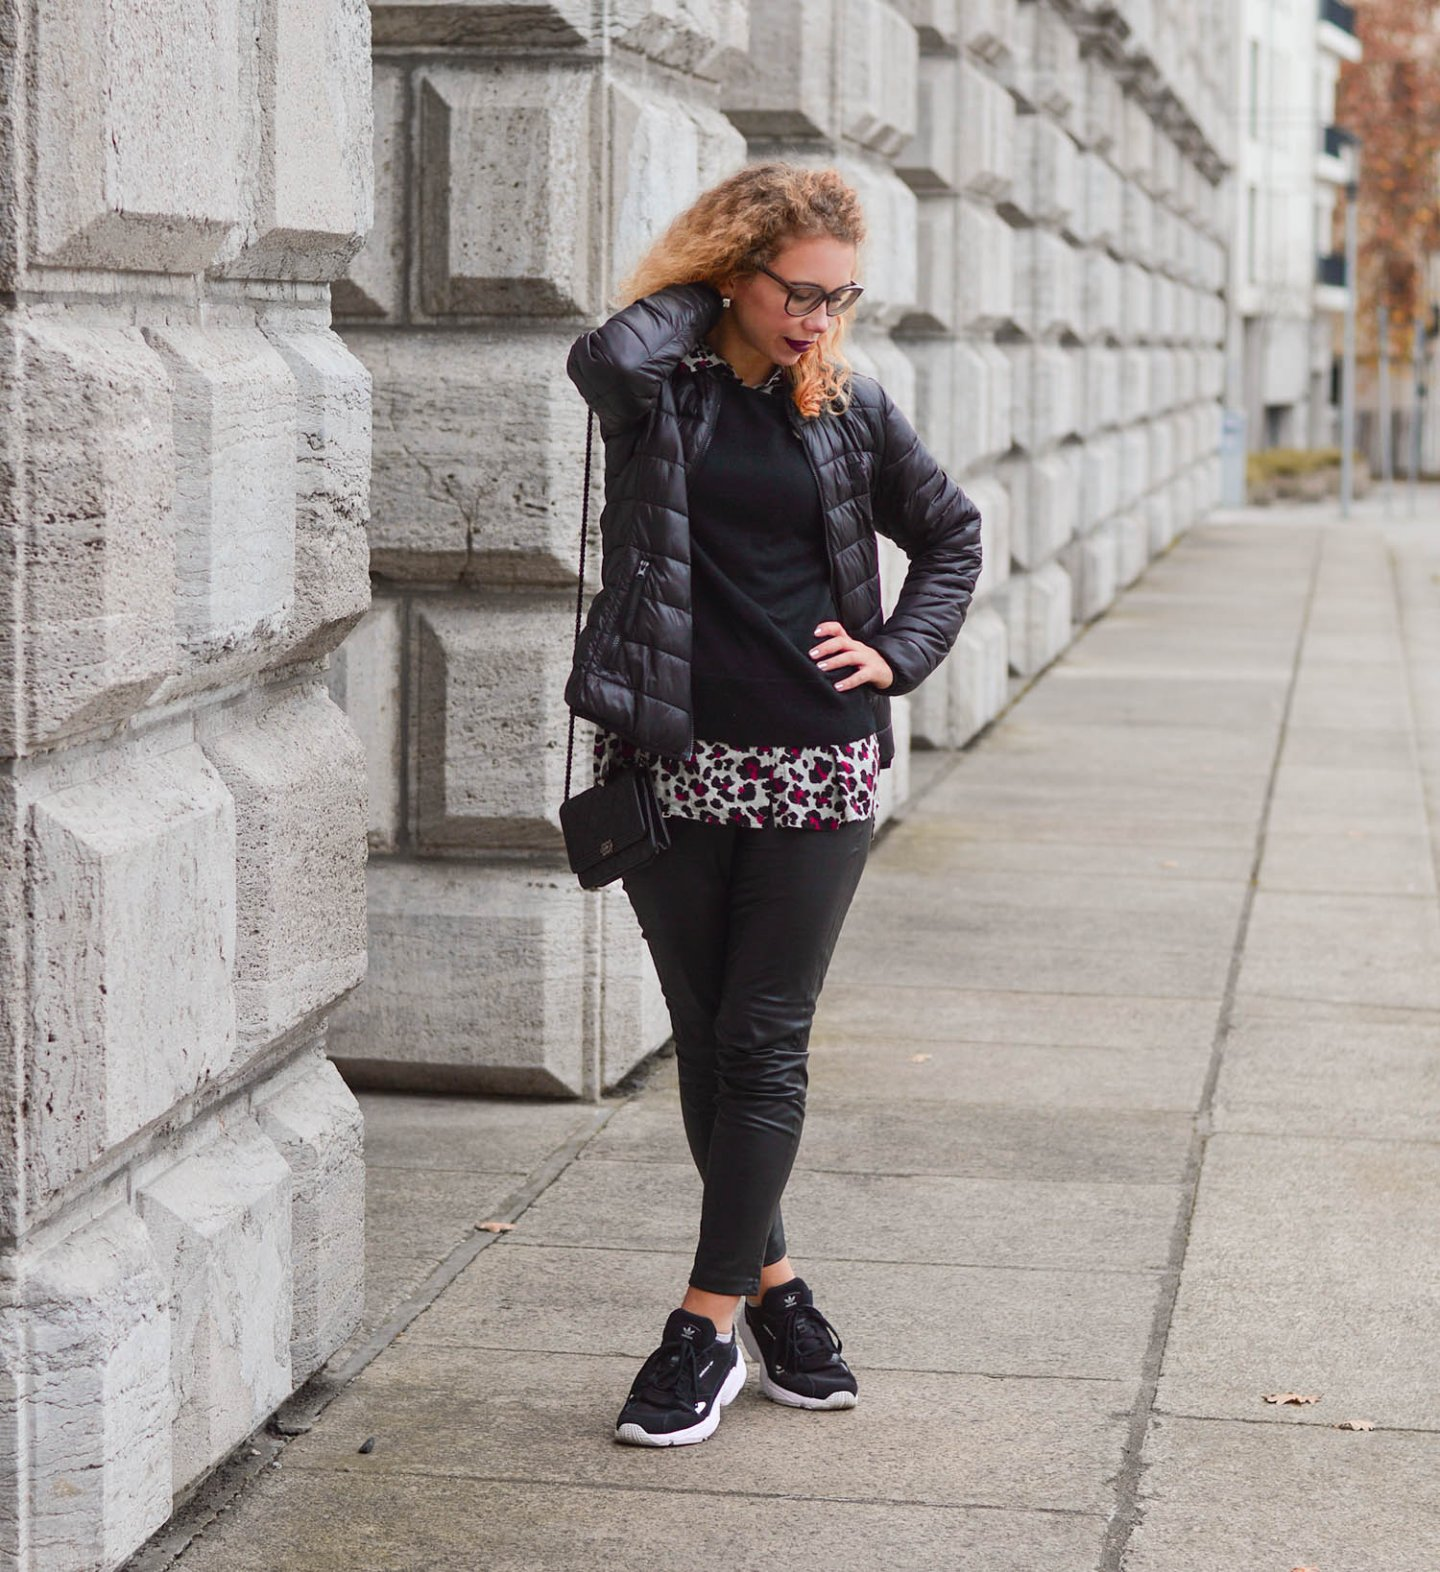 Sweater-and-Blouse-Combo-with-Quilted-Jacket-Leather-Pants-Adidas-Falcon-Kationette-Fashionblogger-Germany